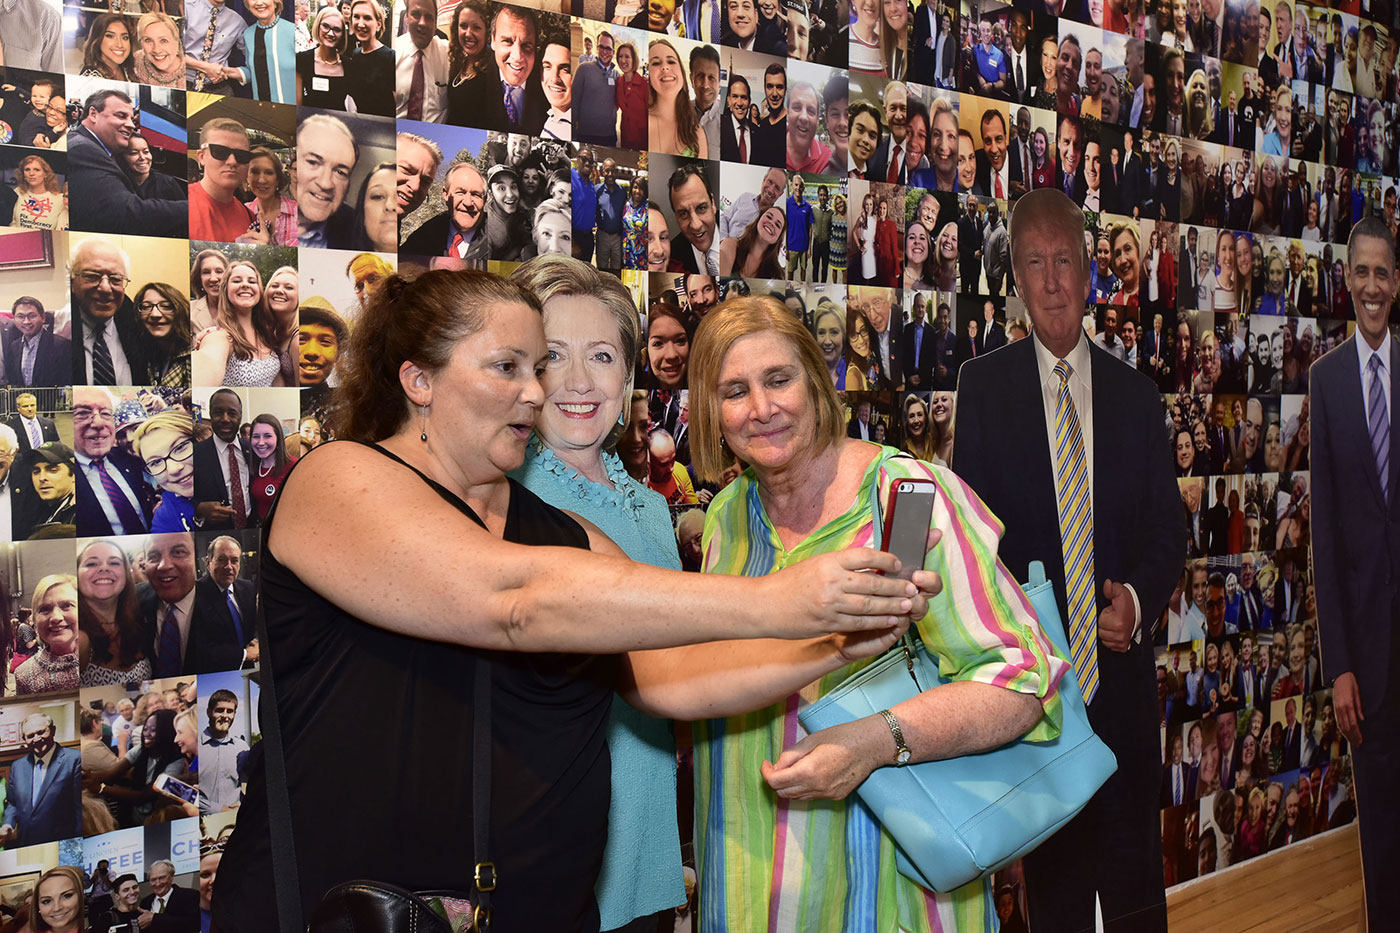 Visitors to the exhibition taking selfies with a life-size cutout of Hillary Clinton (image courtesy the International Center of Photography)